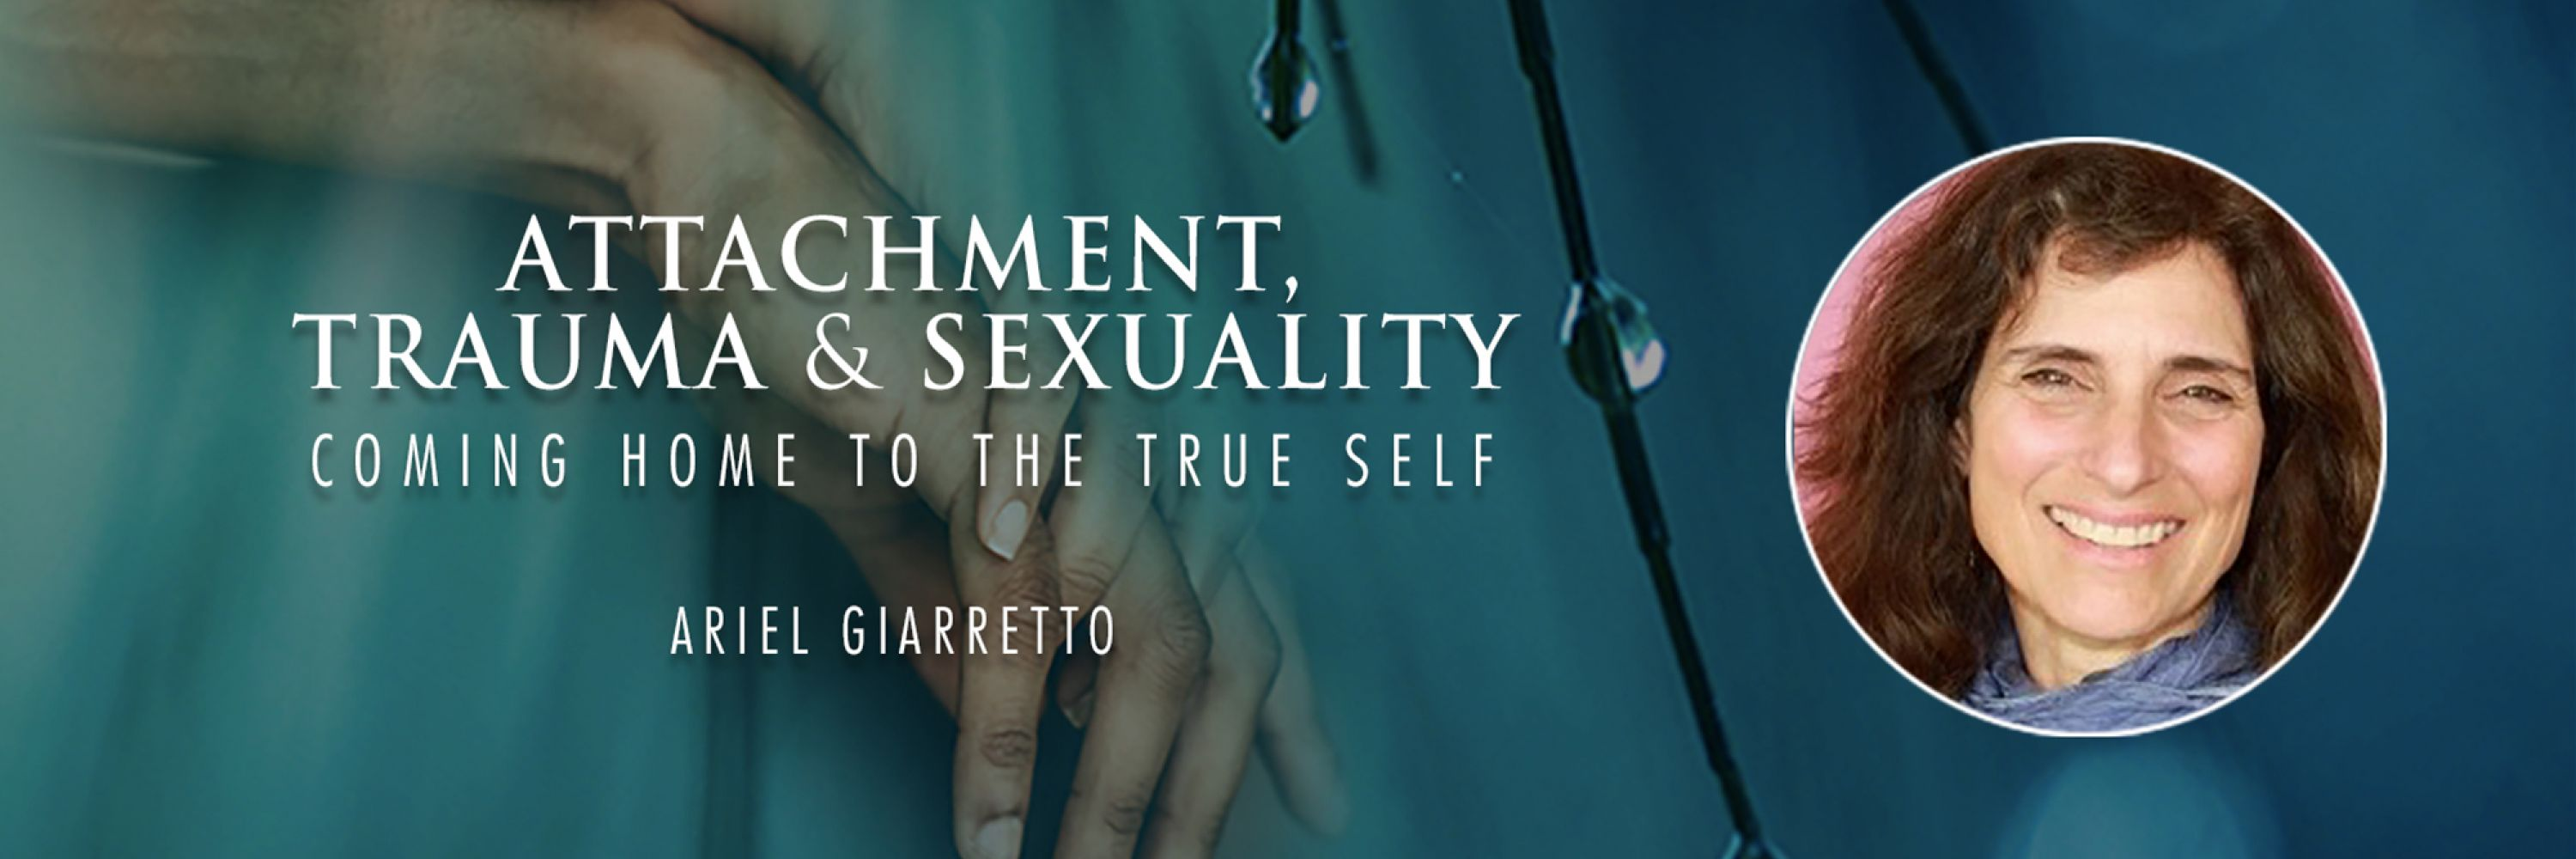 Attachment, Trauma and Sexuality—Coming Home to the True Self